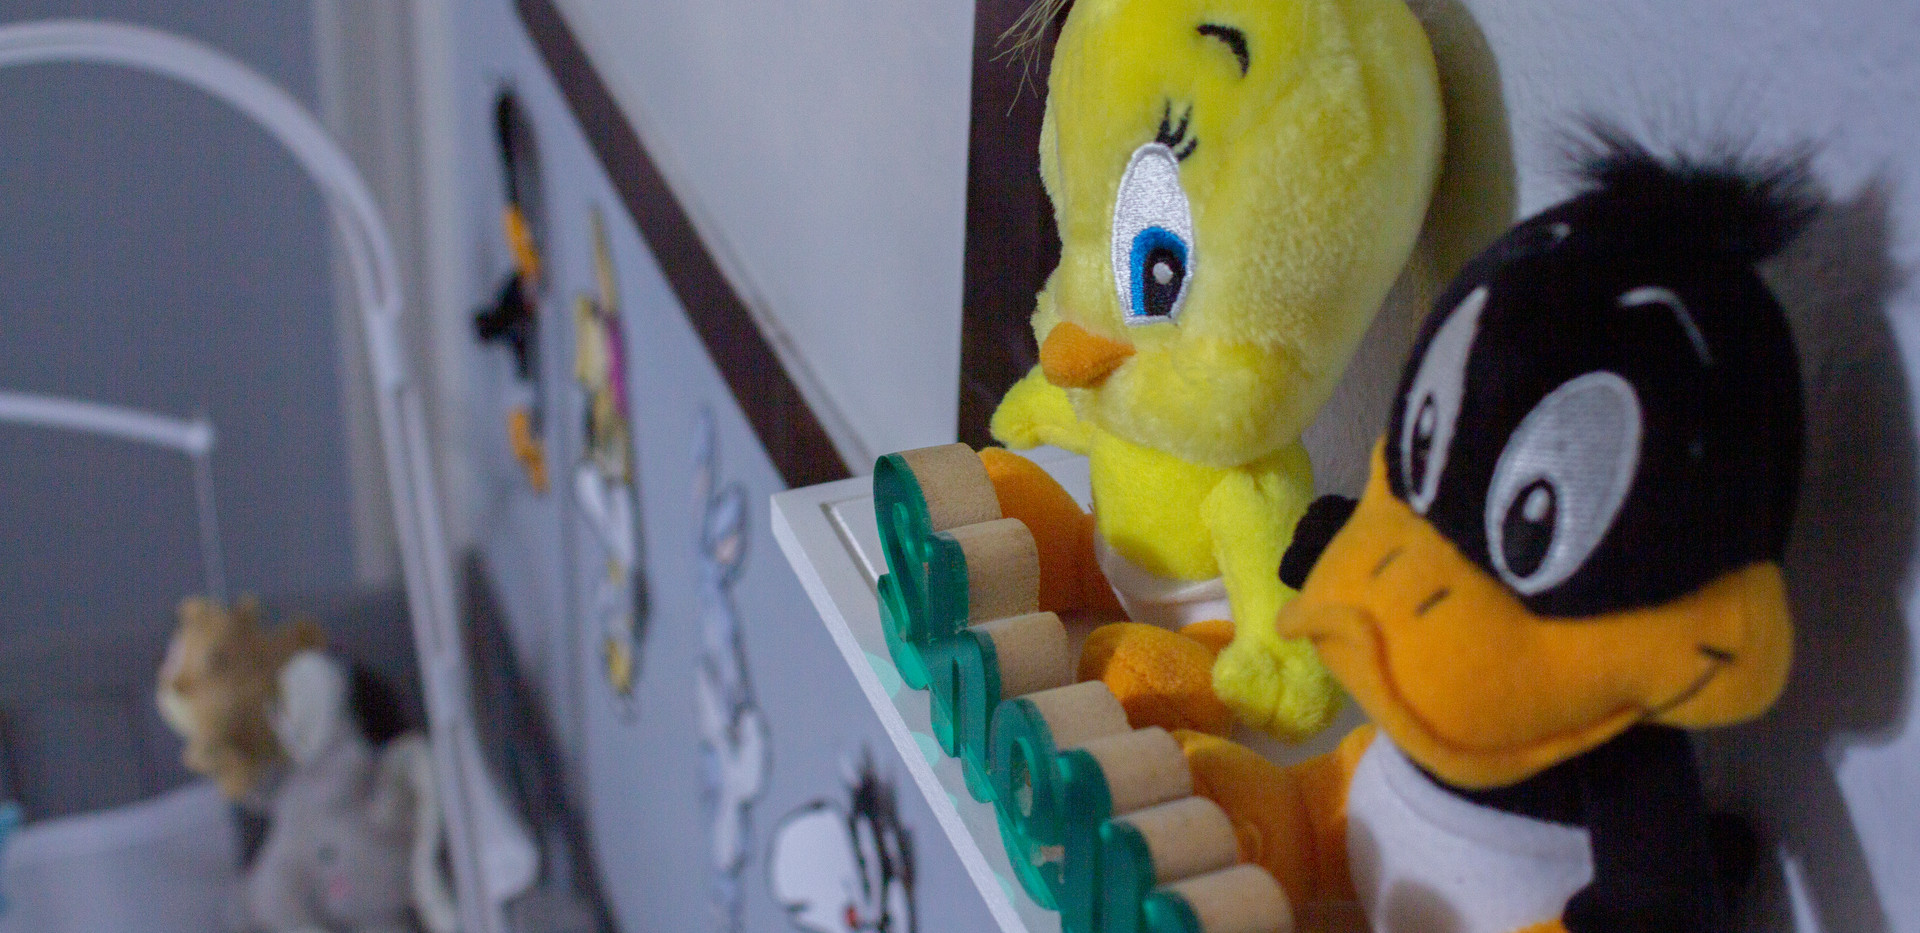 Focus on Tweety and Daffy